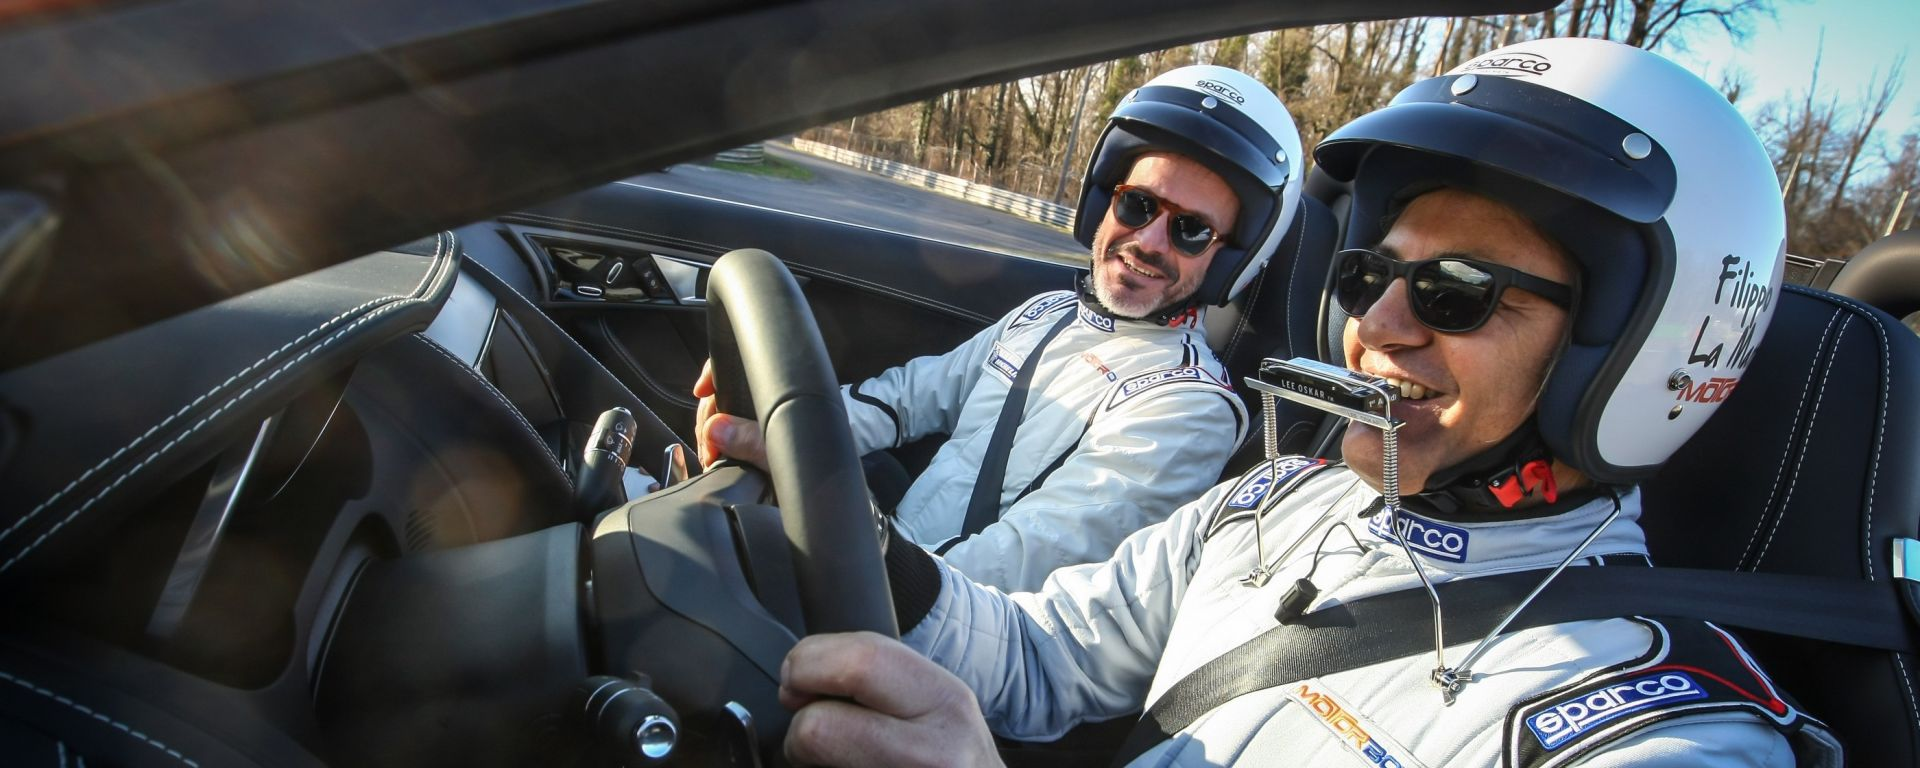 Filippo La Mantia in pista con la Jaguar F-Type: il trailer